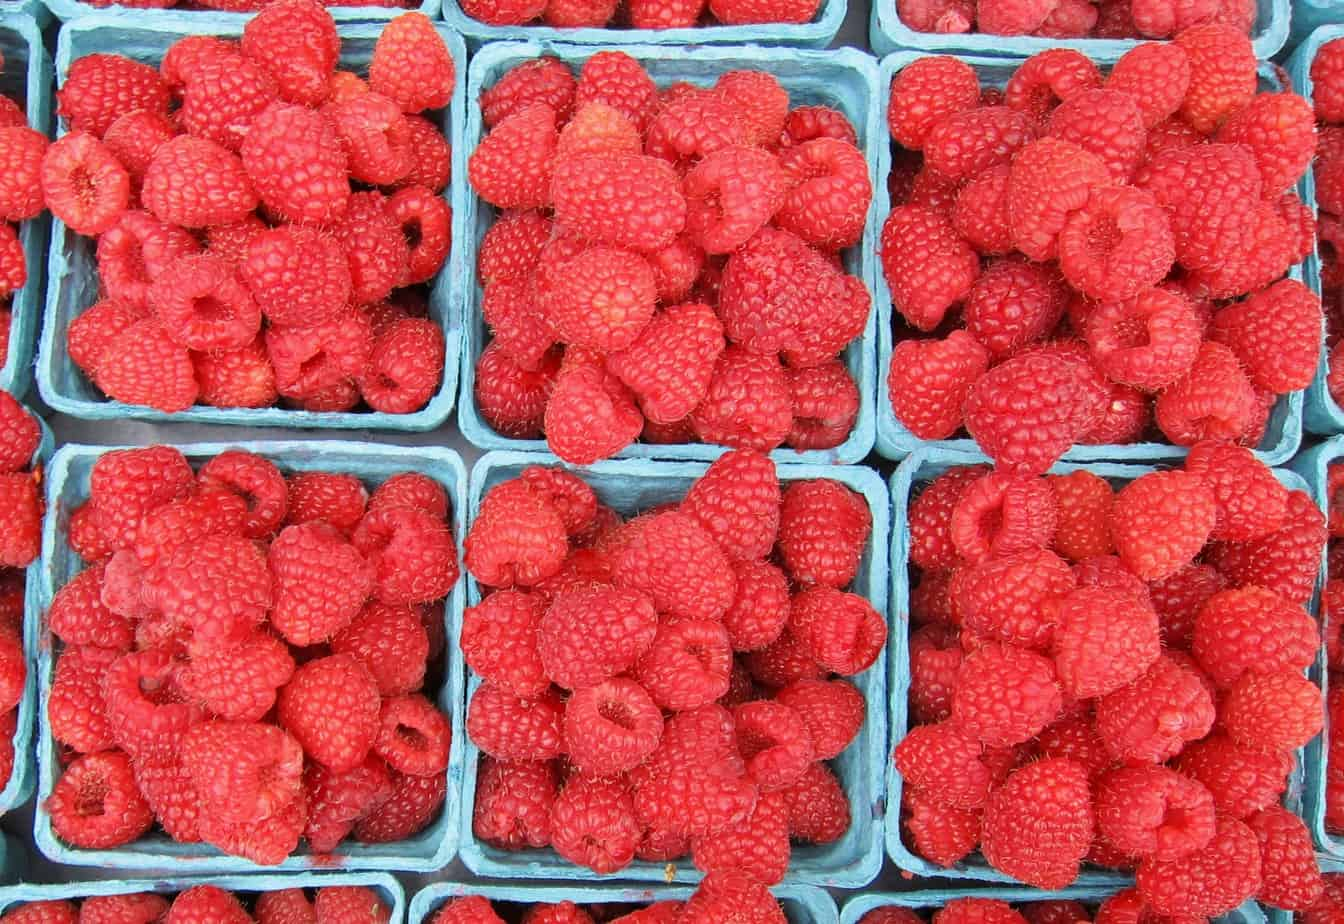 Local rasberries